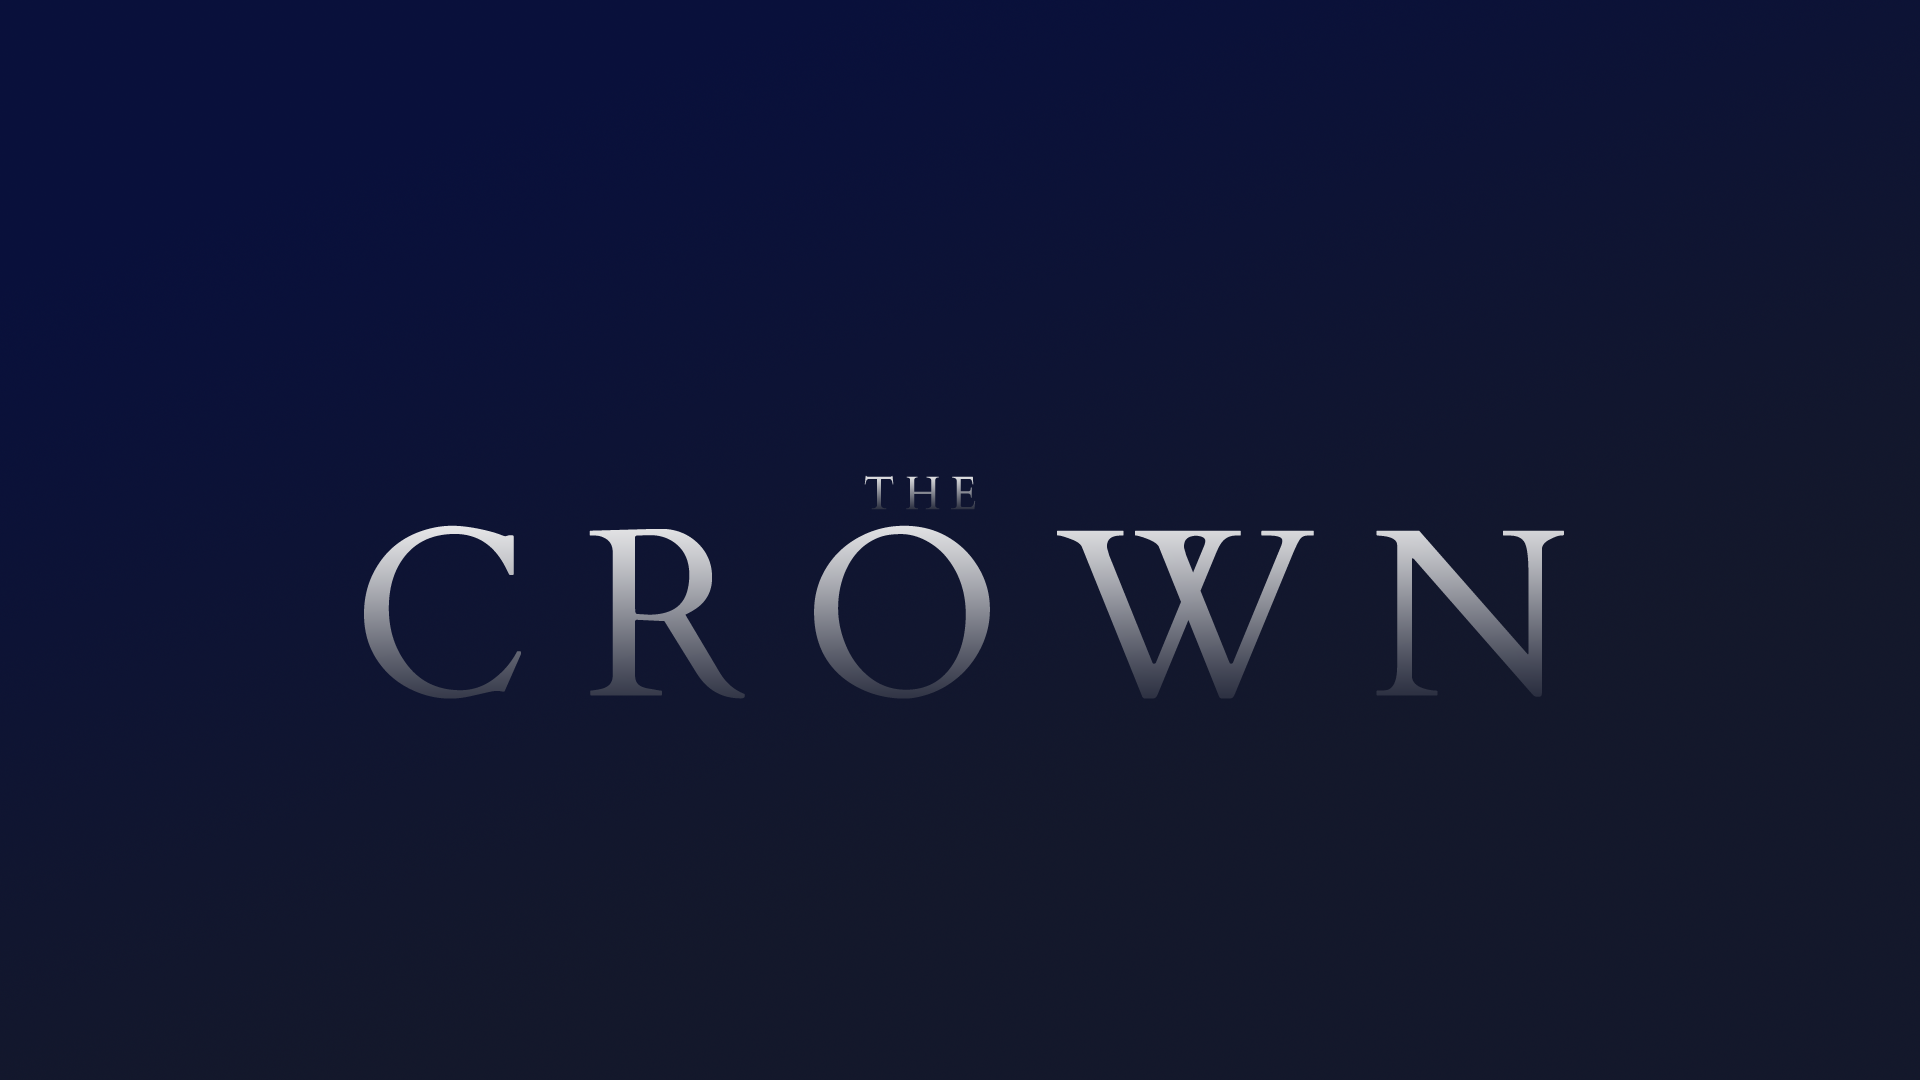 The Crown Png - File:The crown logo2.png - Wikimedia Commons